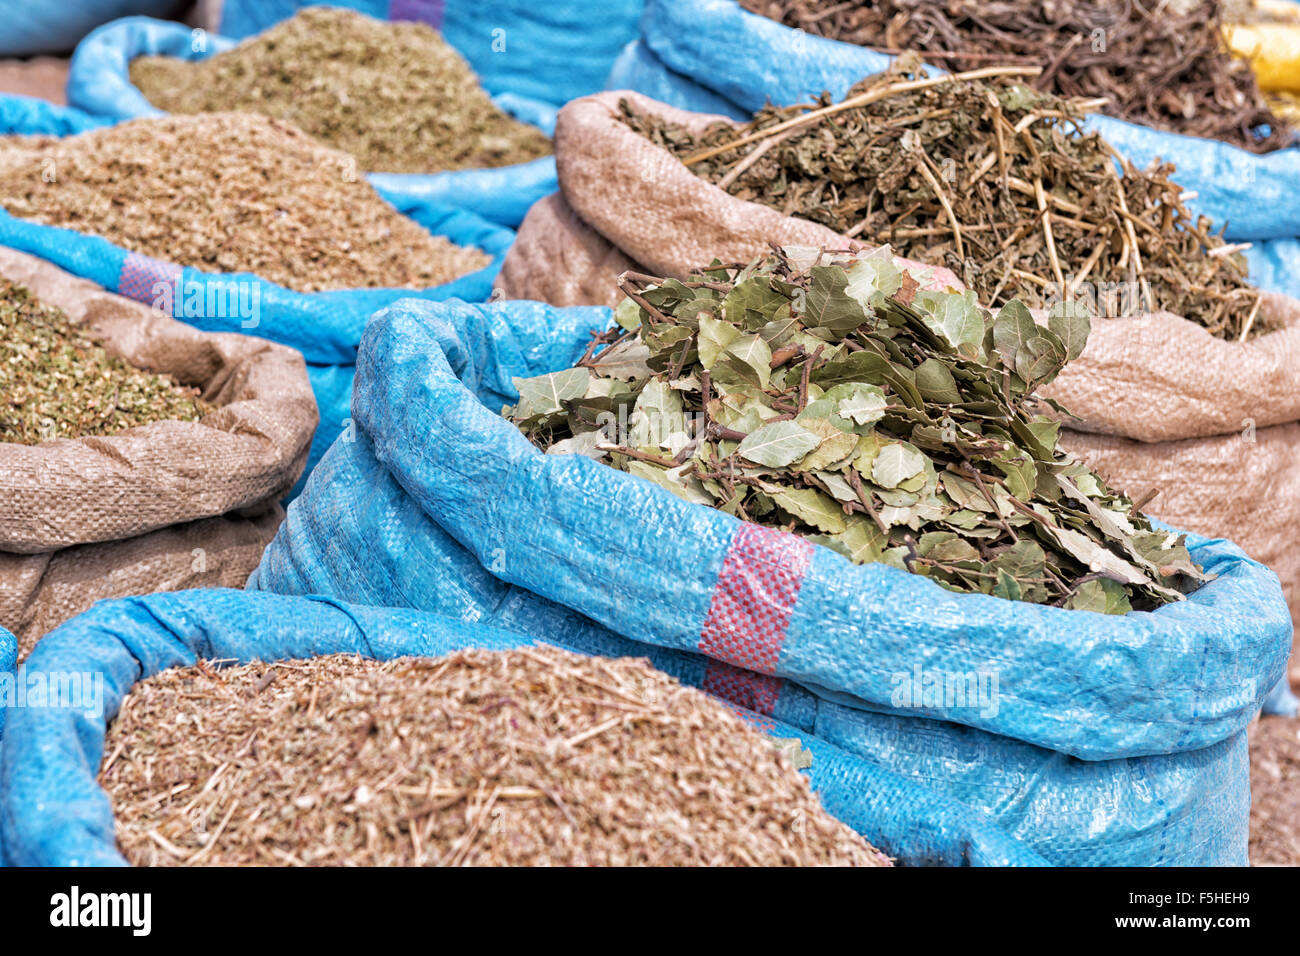 Herbs and spices at the market. - Stock Image